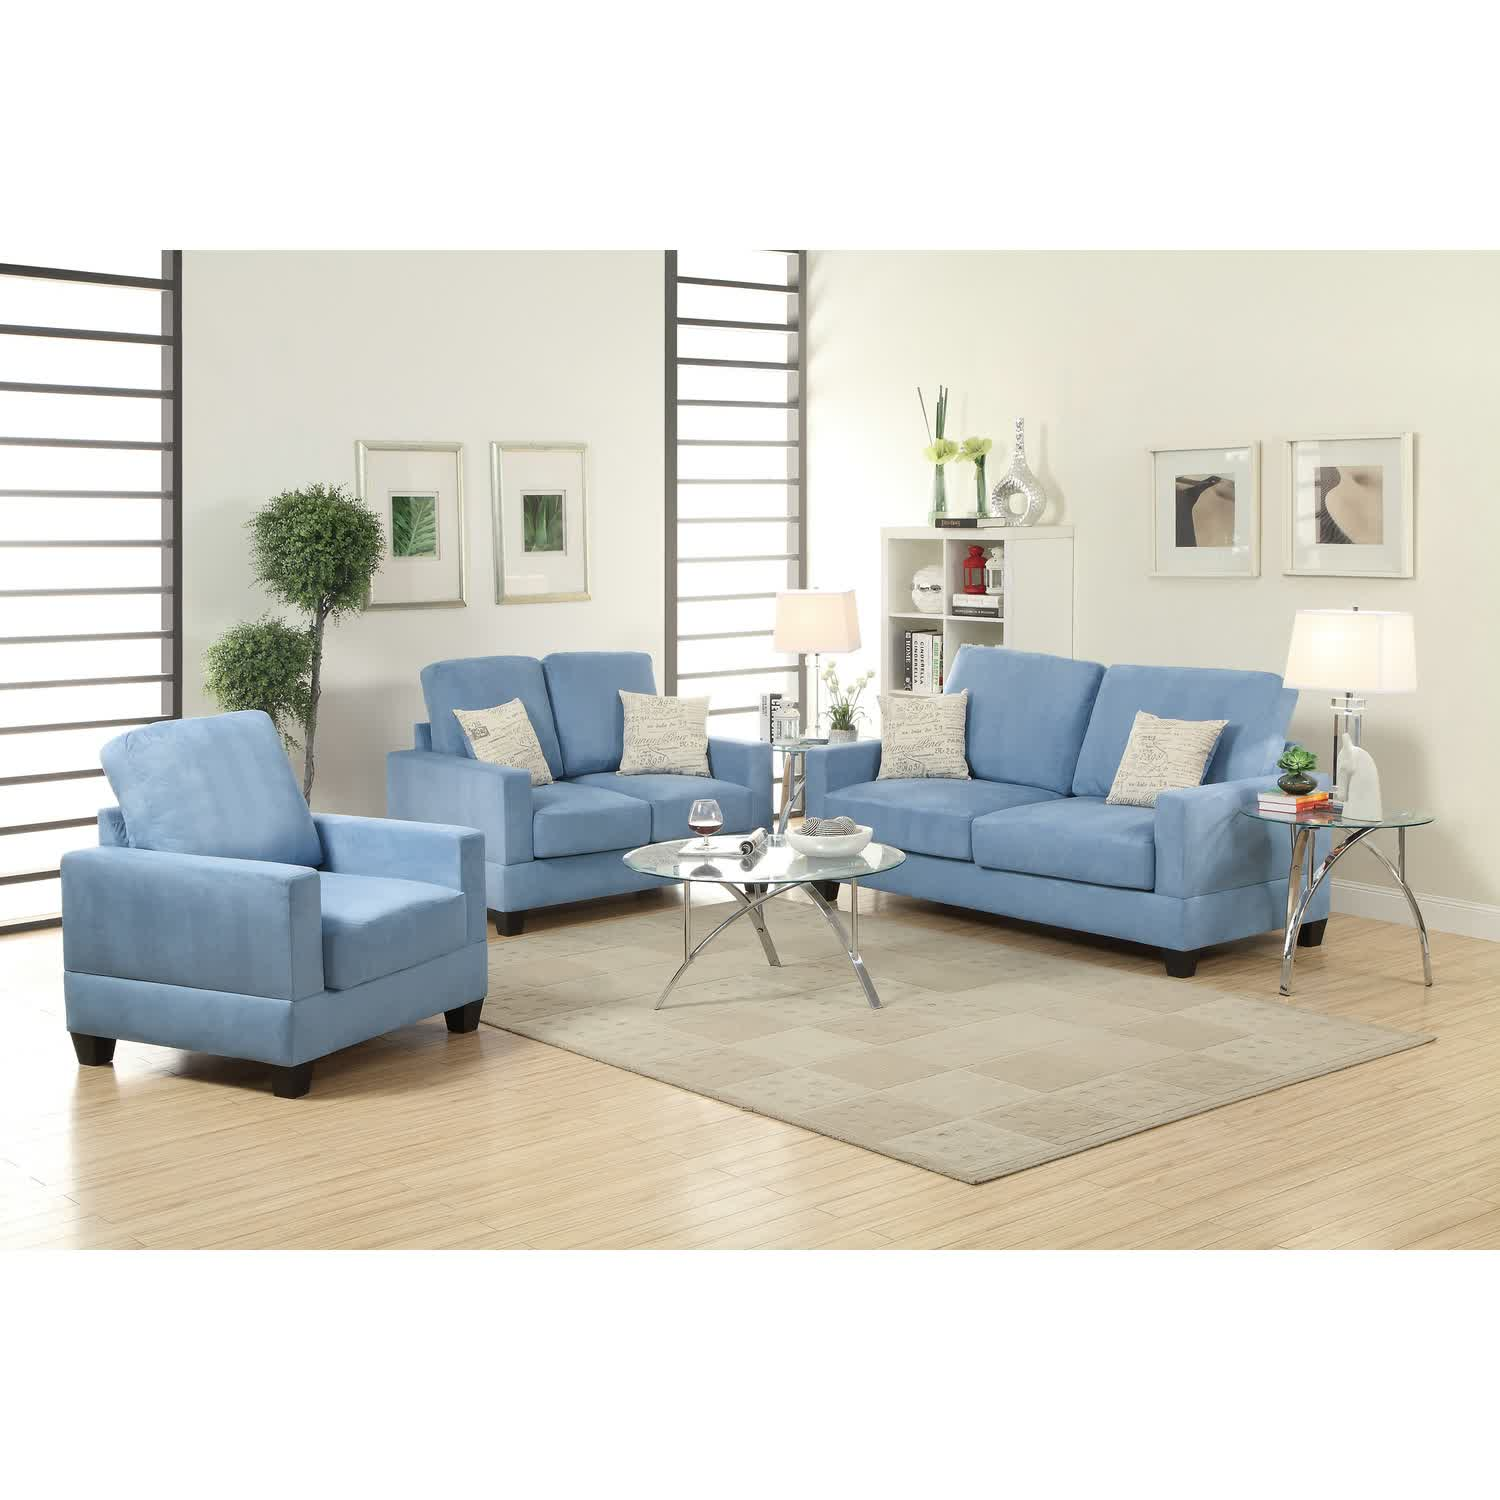 Apartment-Size Sectional Selections For Your Small-Space